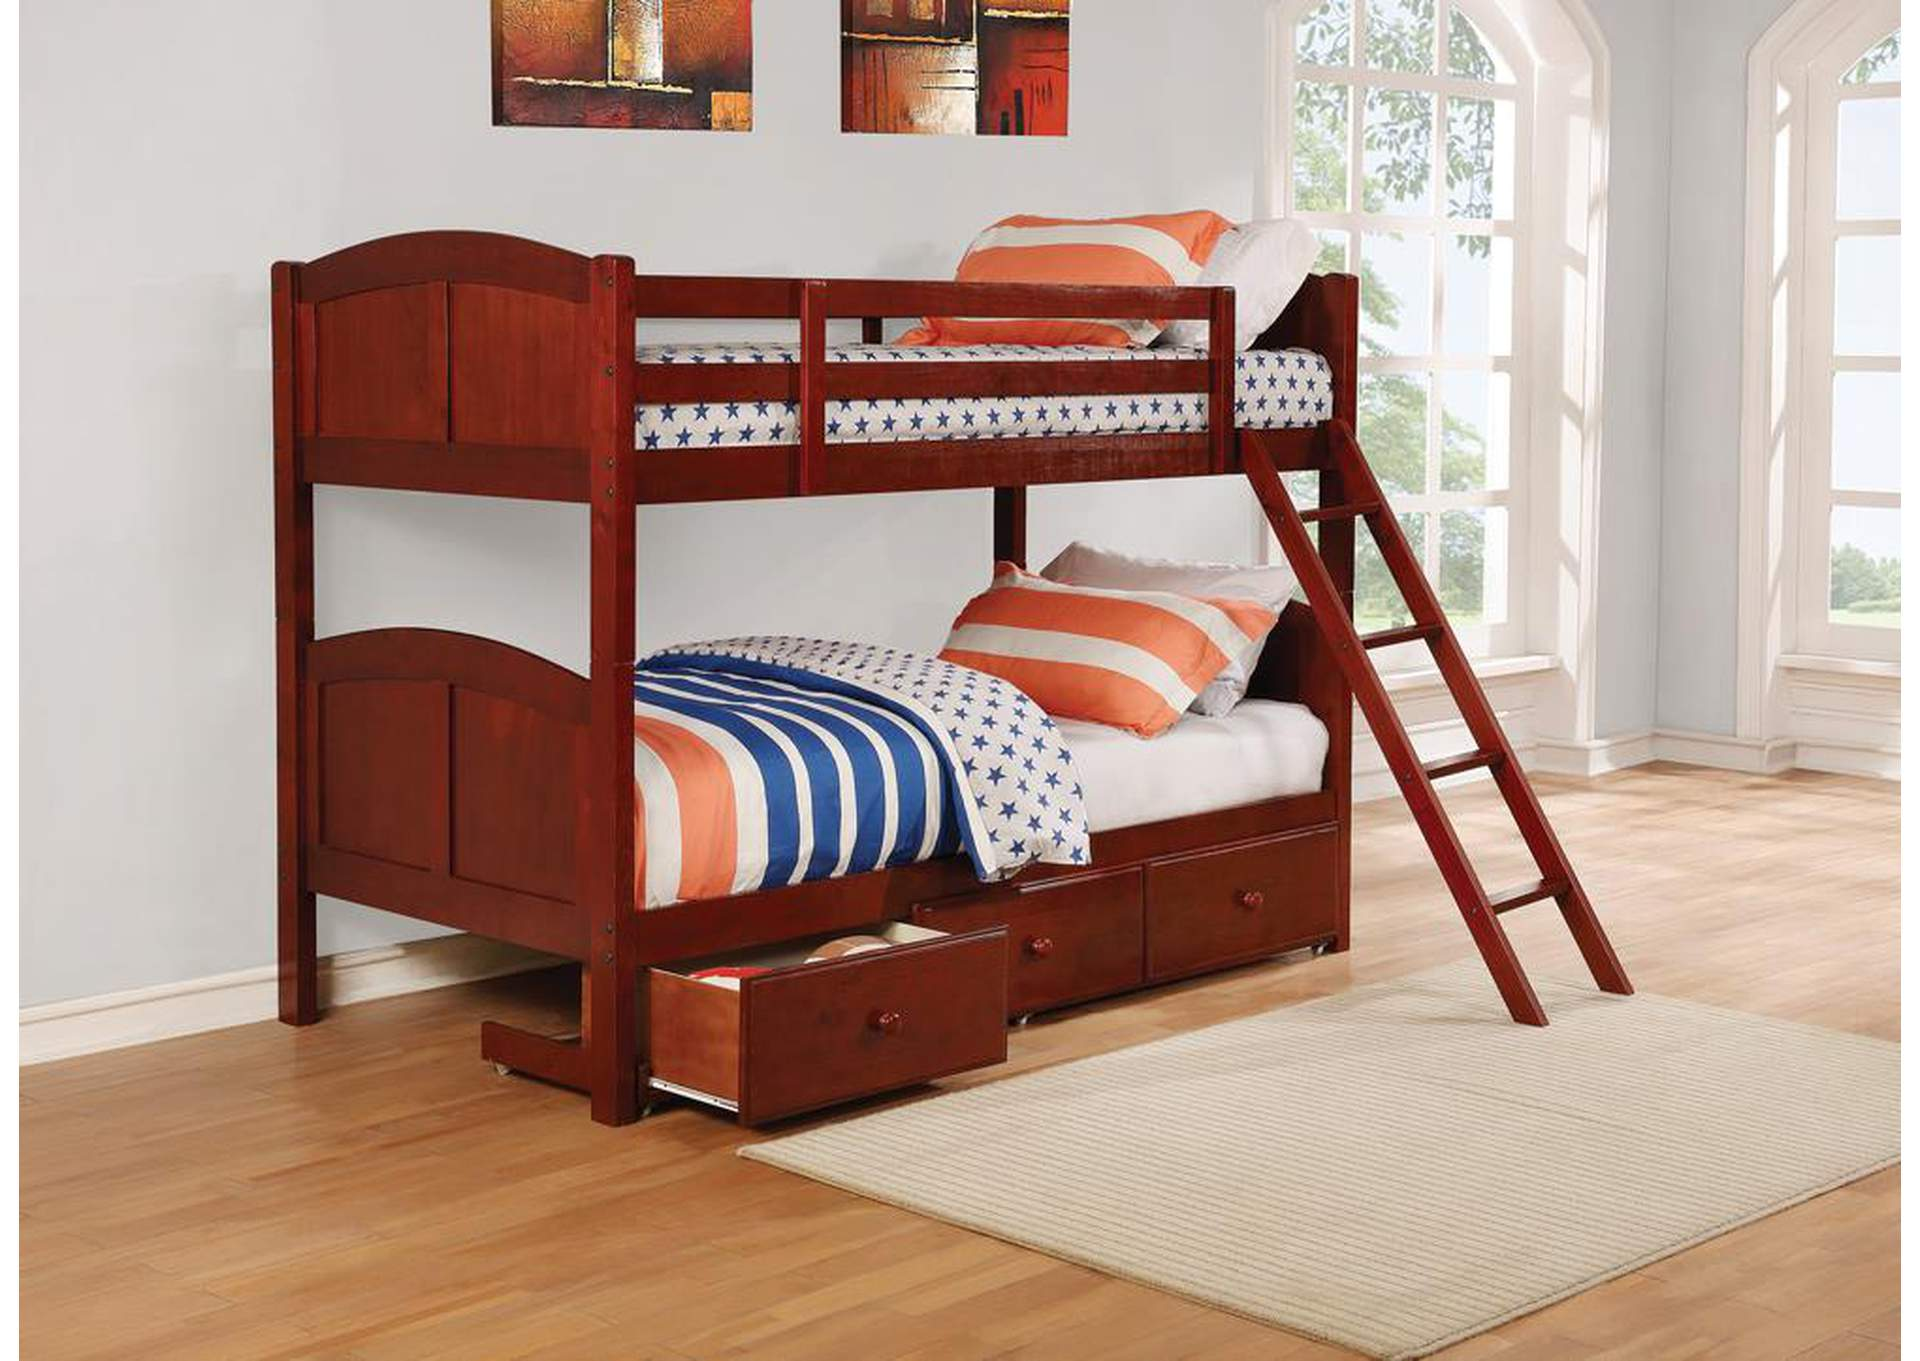 Parker Chestnut Twin/Twin Bunk Bed,Coaster Furniture